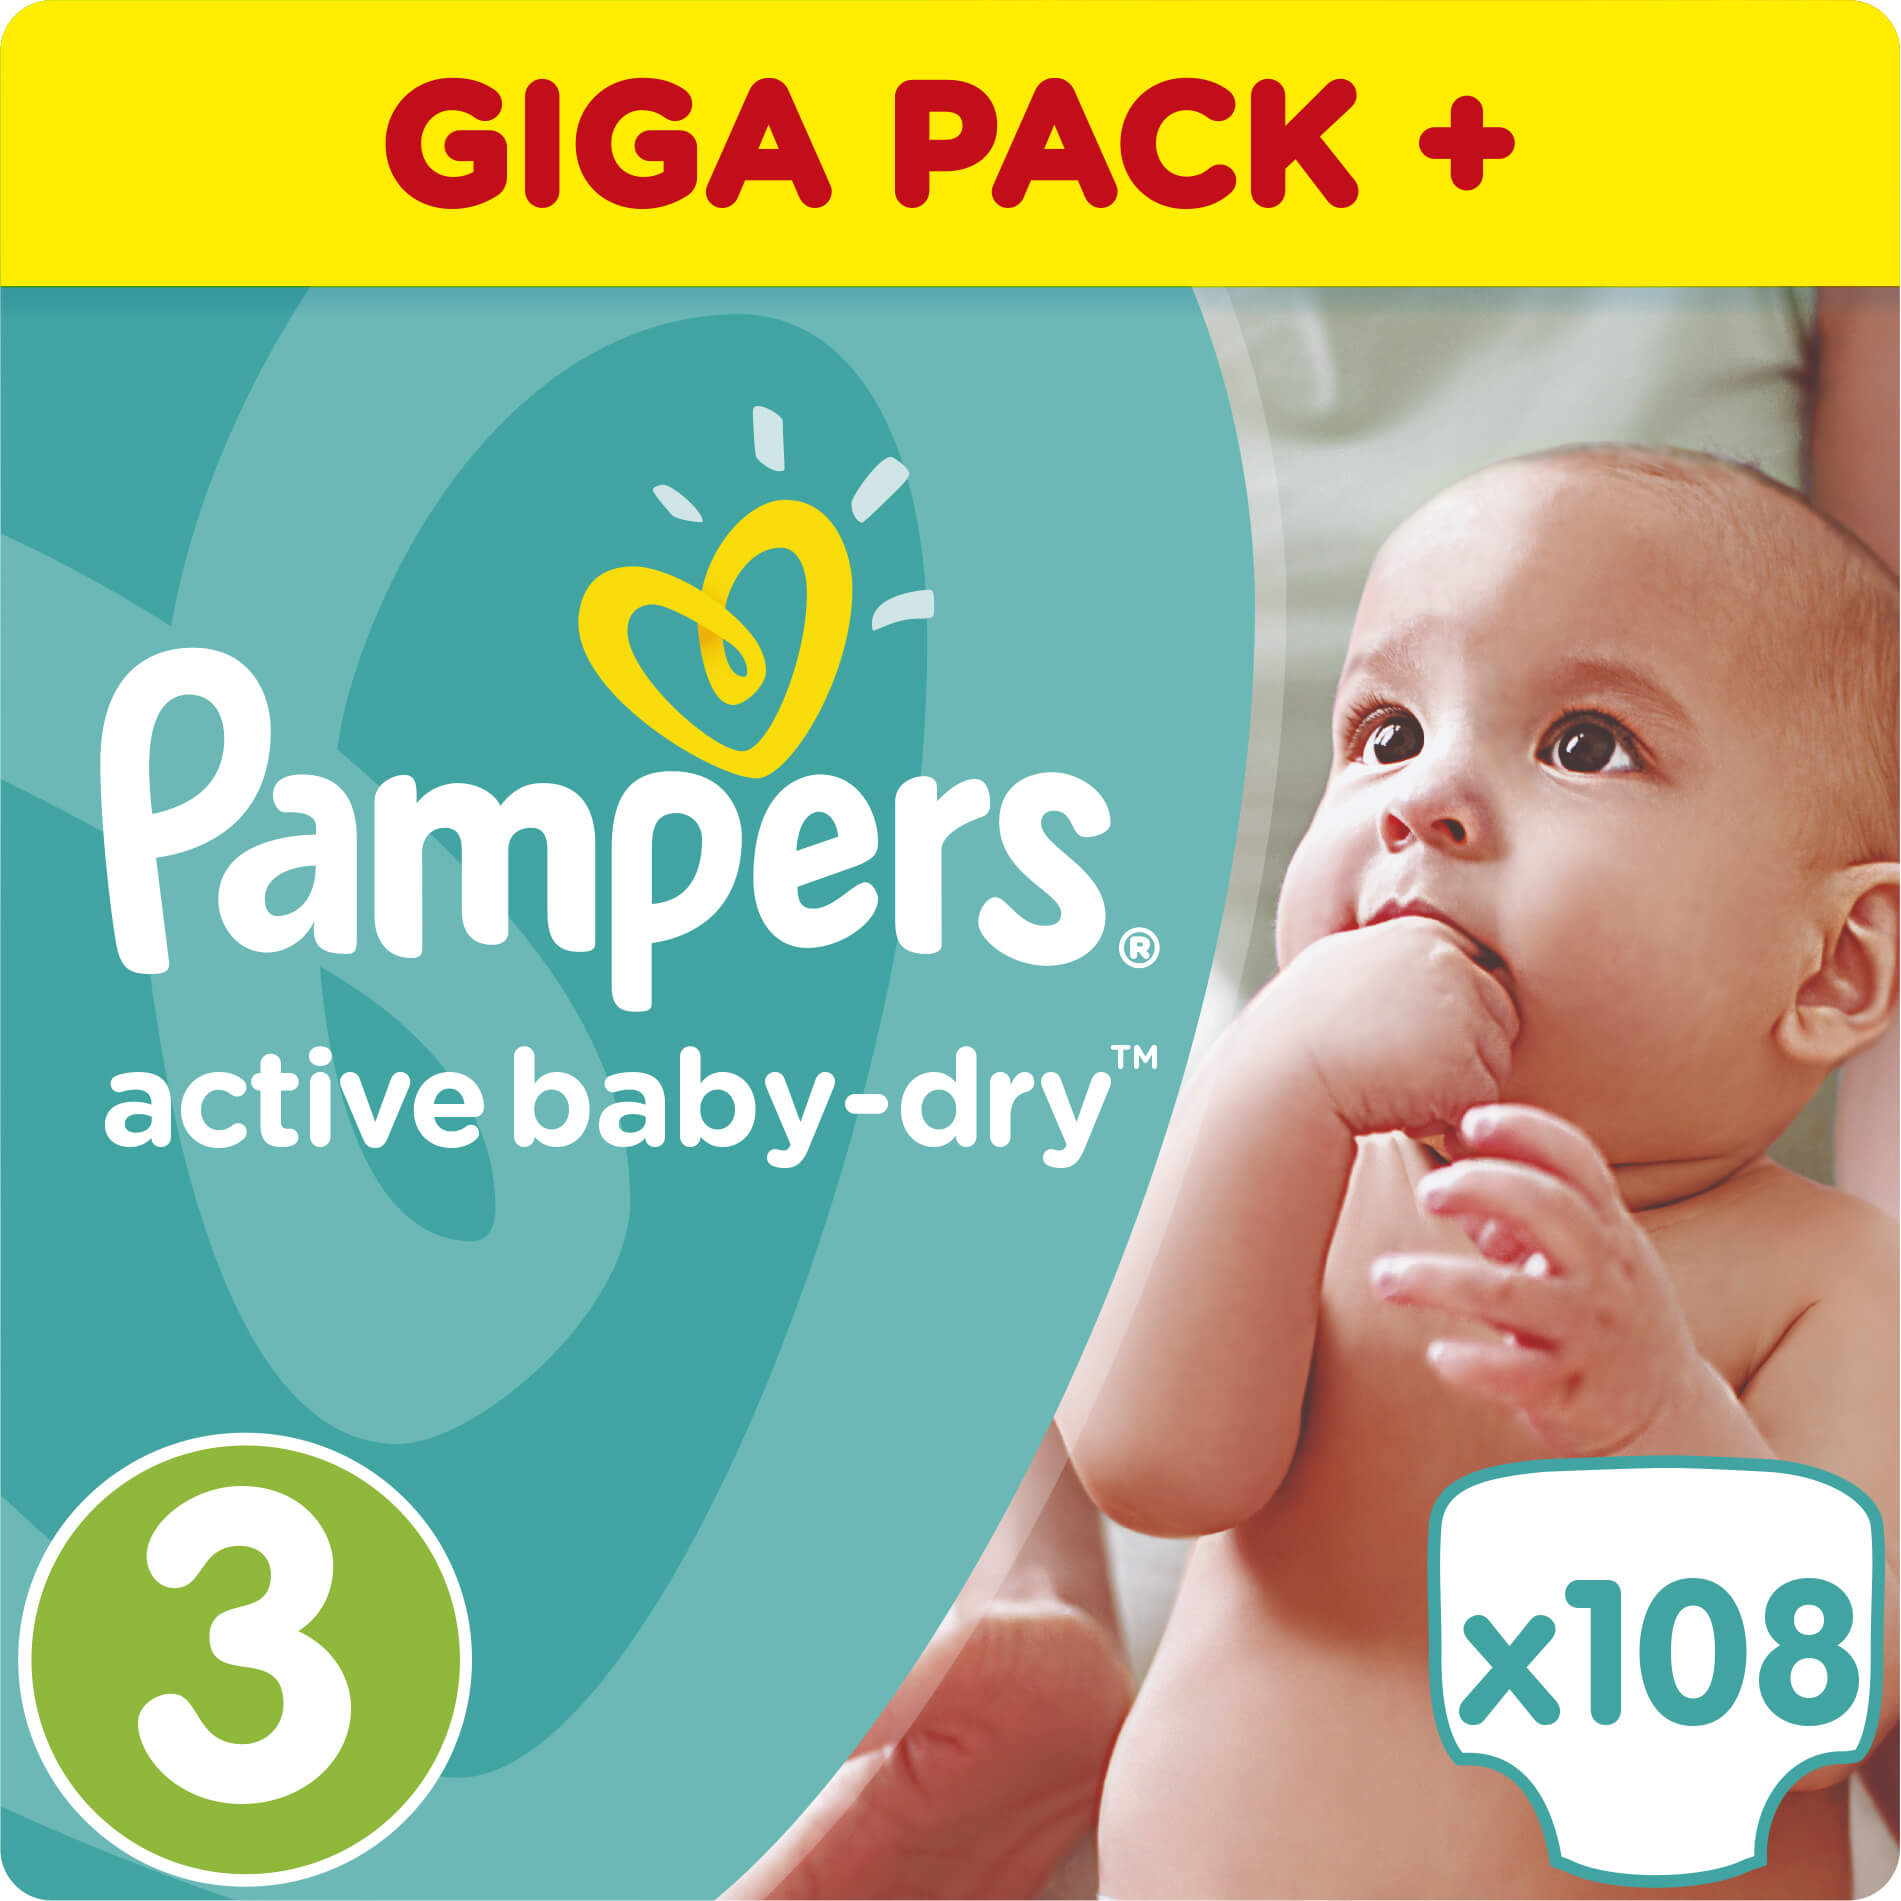 Pampers Active Baby Dry Giant Pack No3 (5-9kg) 108 πάνες μητέρα παιδί   περιποίηση για το μωρό   πάνες για το μωρό